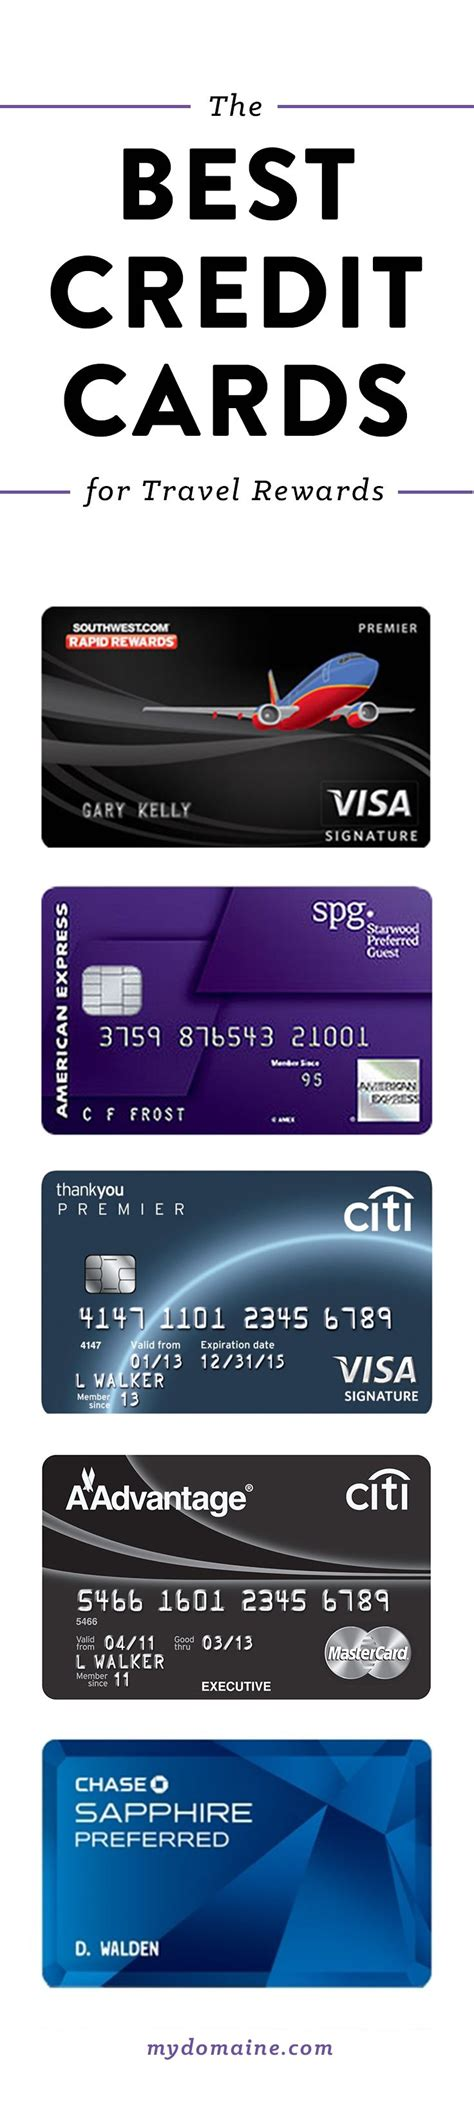 best credit card 1000 ideas about credit cards on pinterest finance